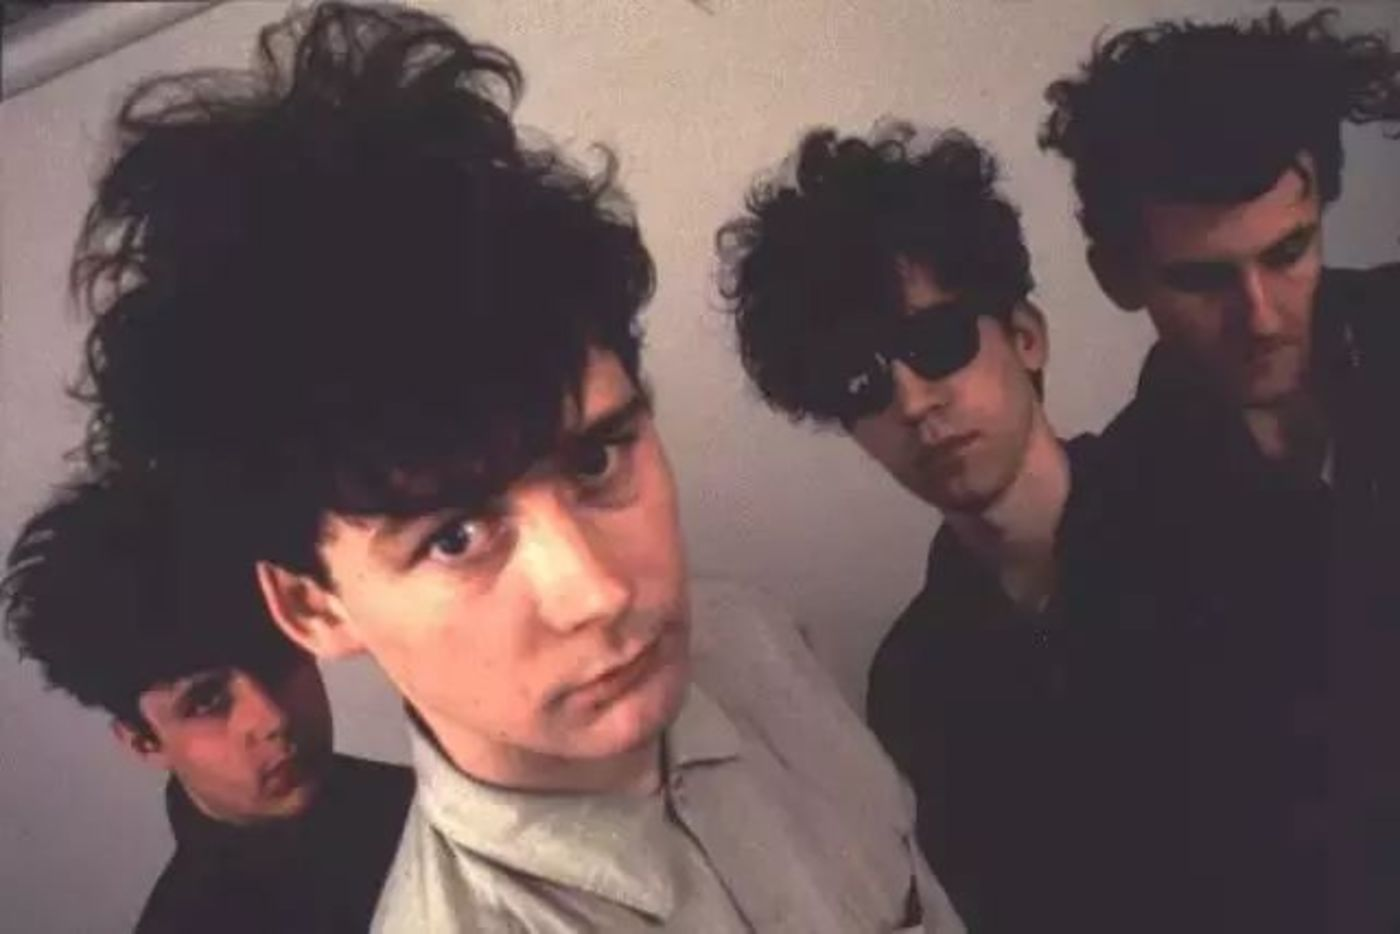 知名摇滚乐队The Jesus and Mary Chain